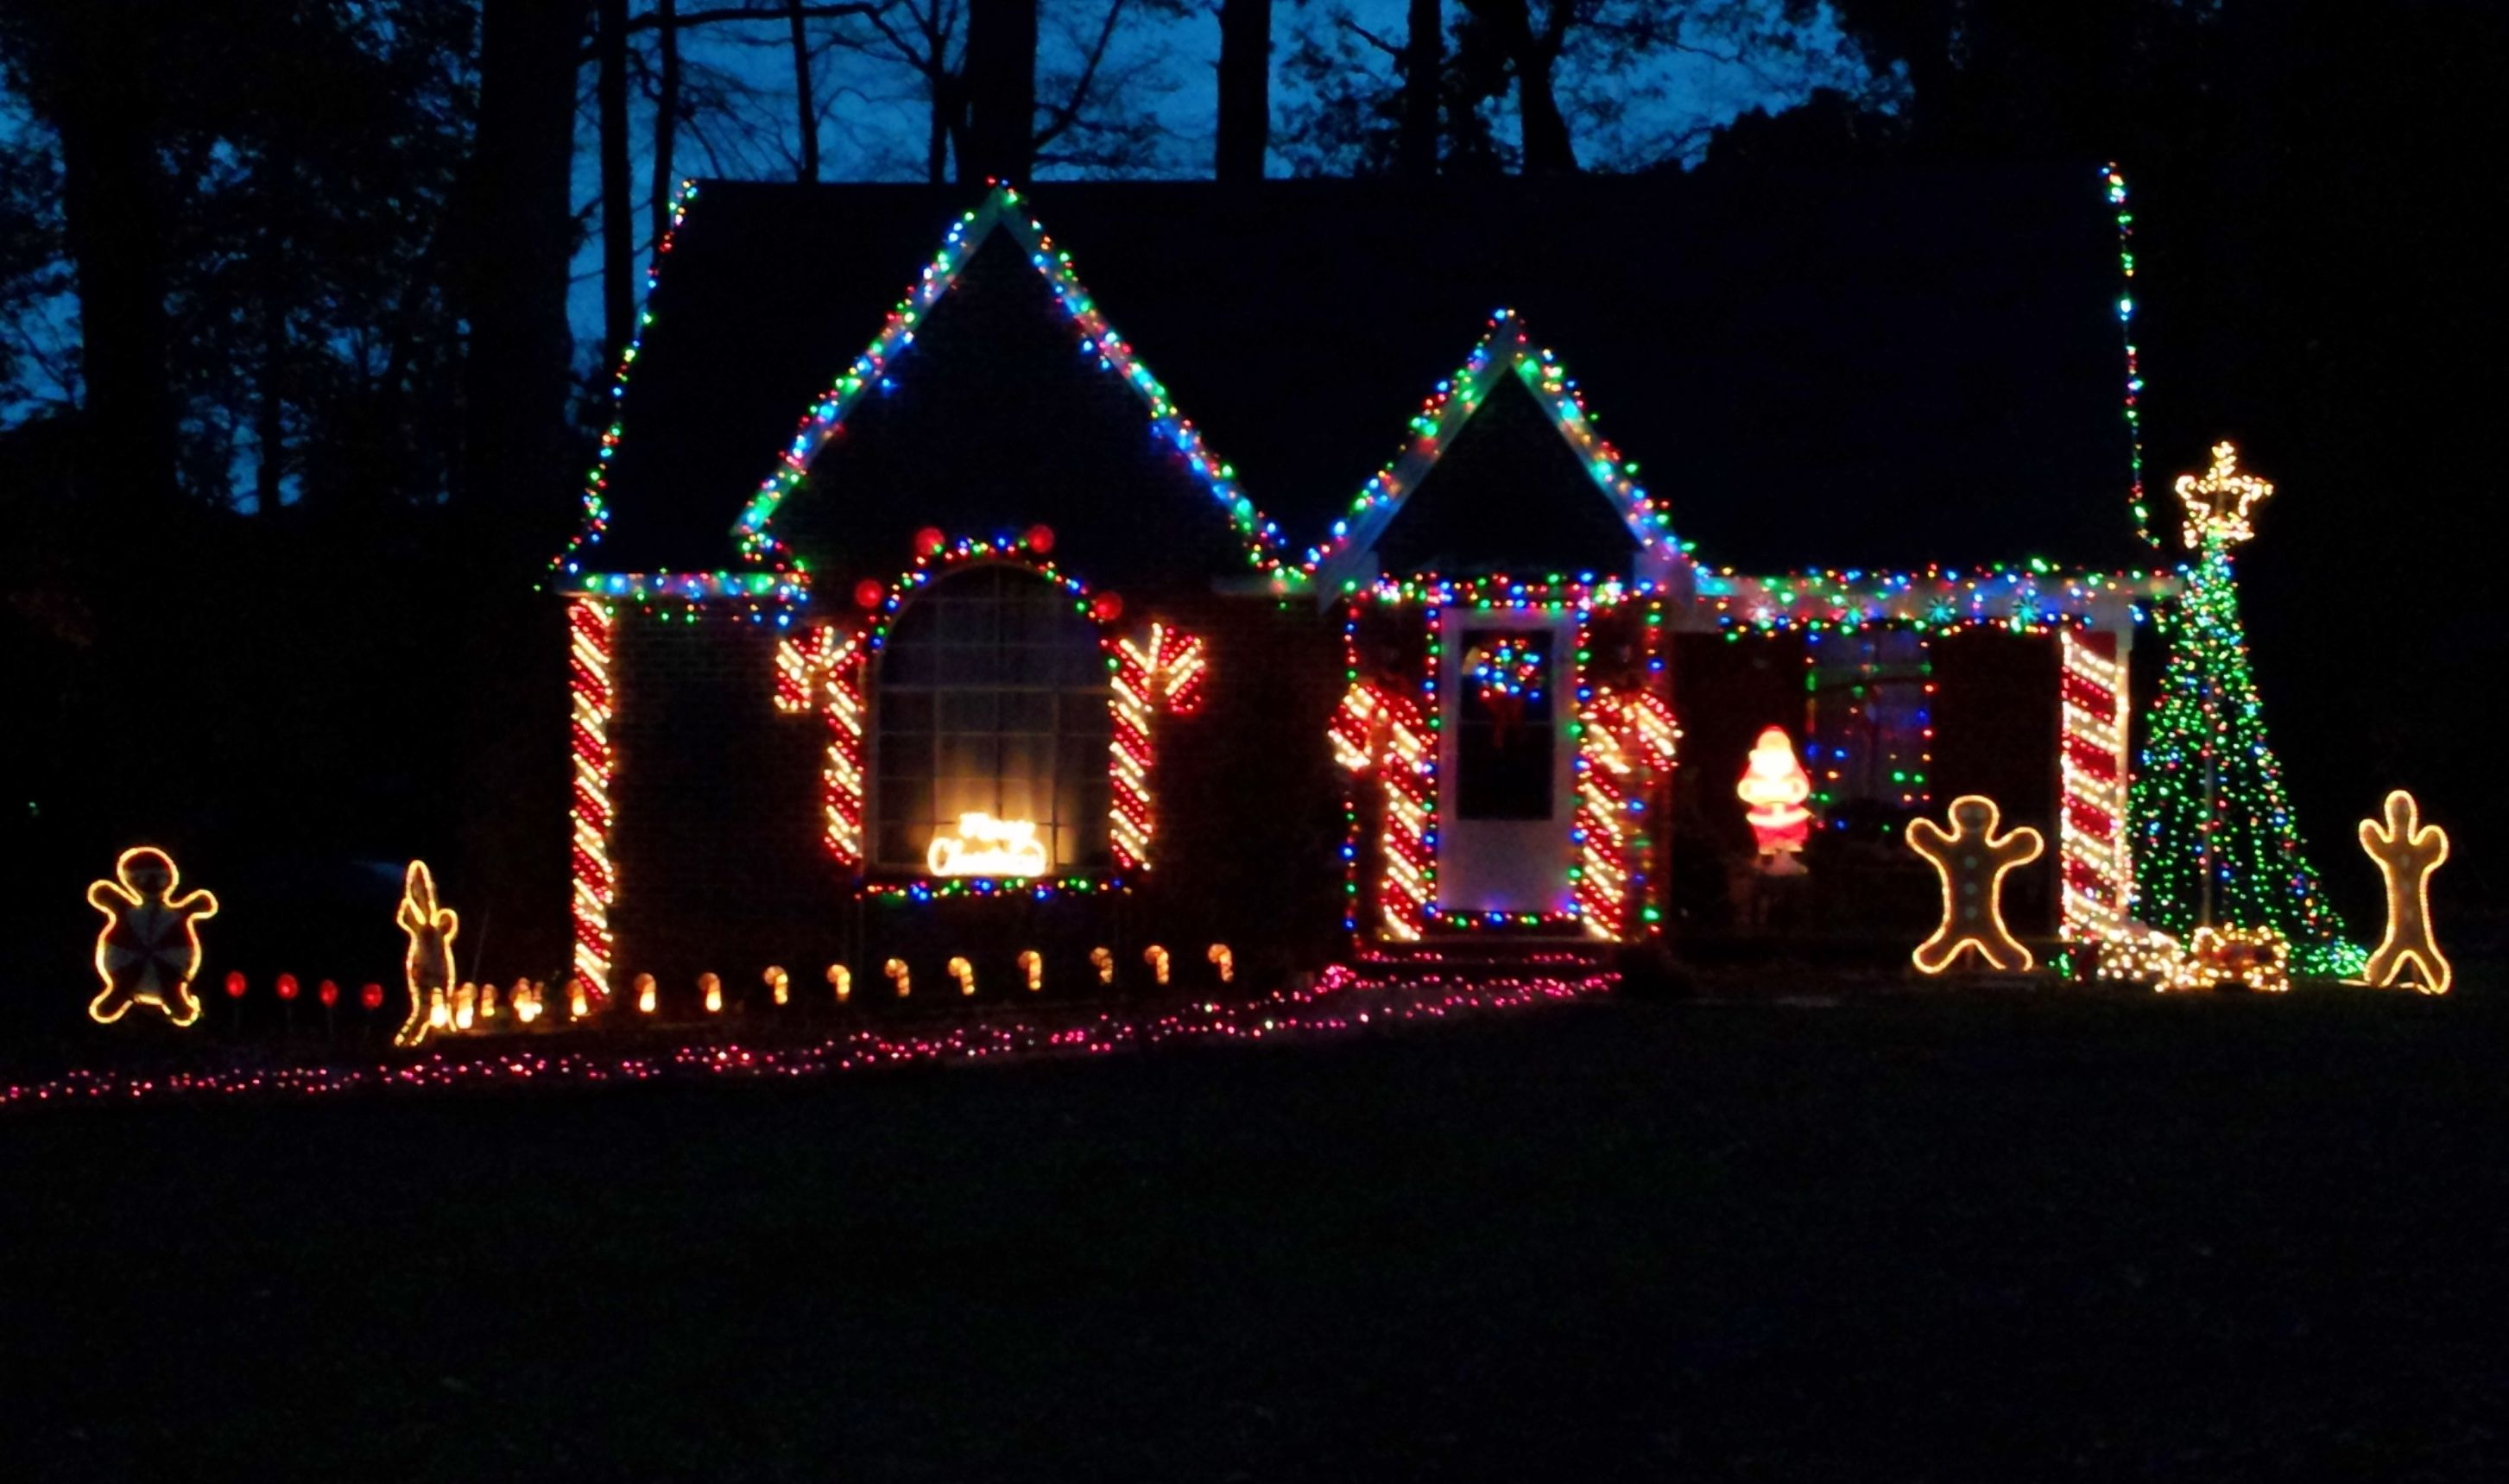 Gingerbread House All Decorated For Christmas Christmas Lights Hanging Christmas Lights Outdoor Christmas Lights